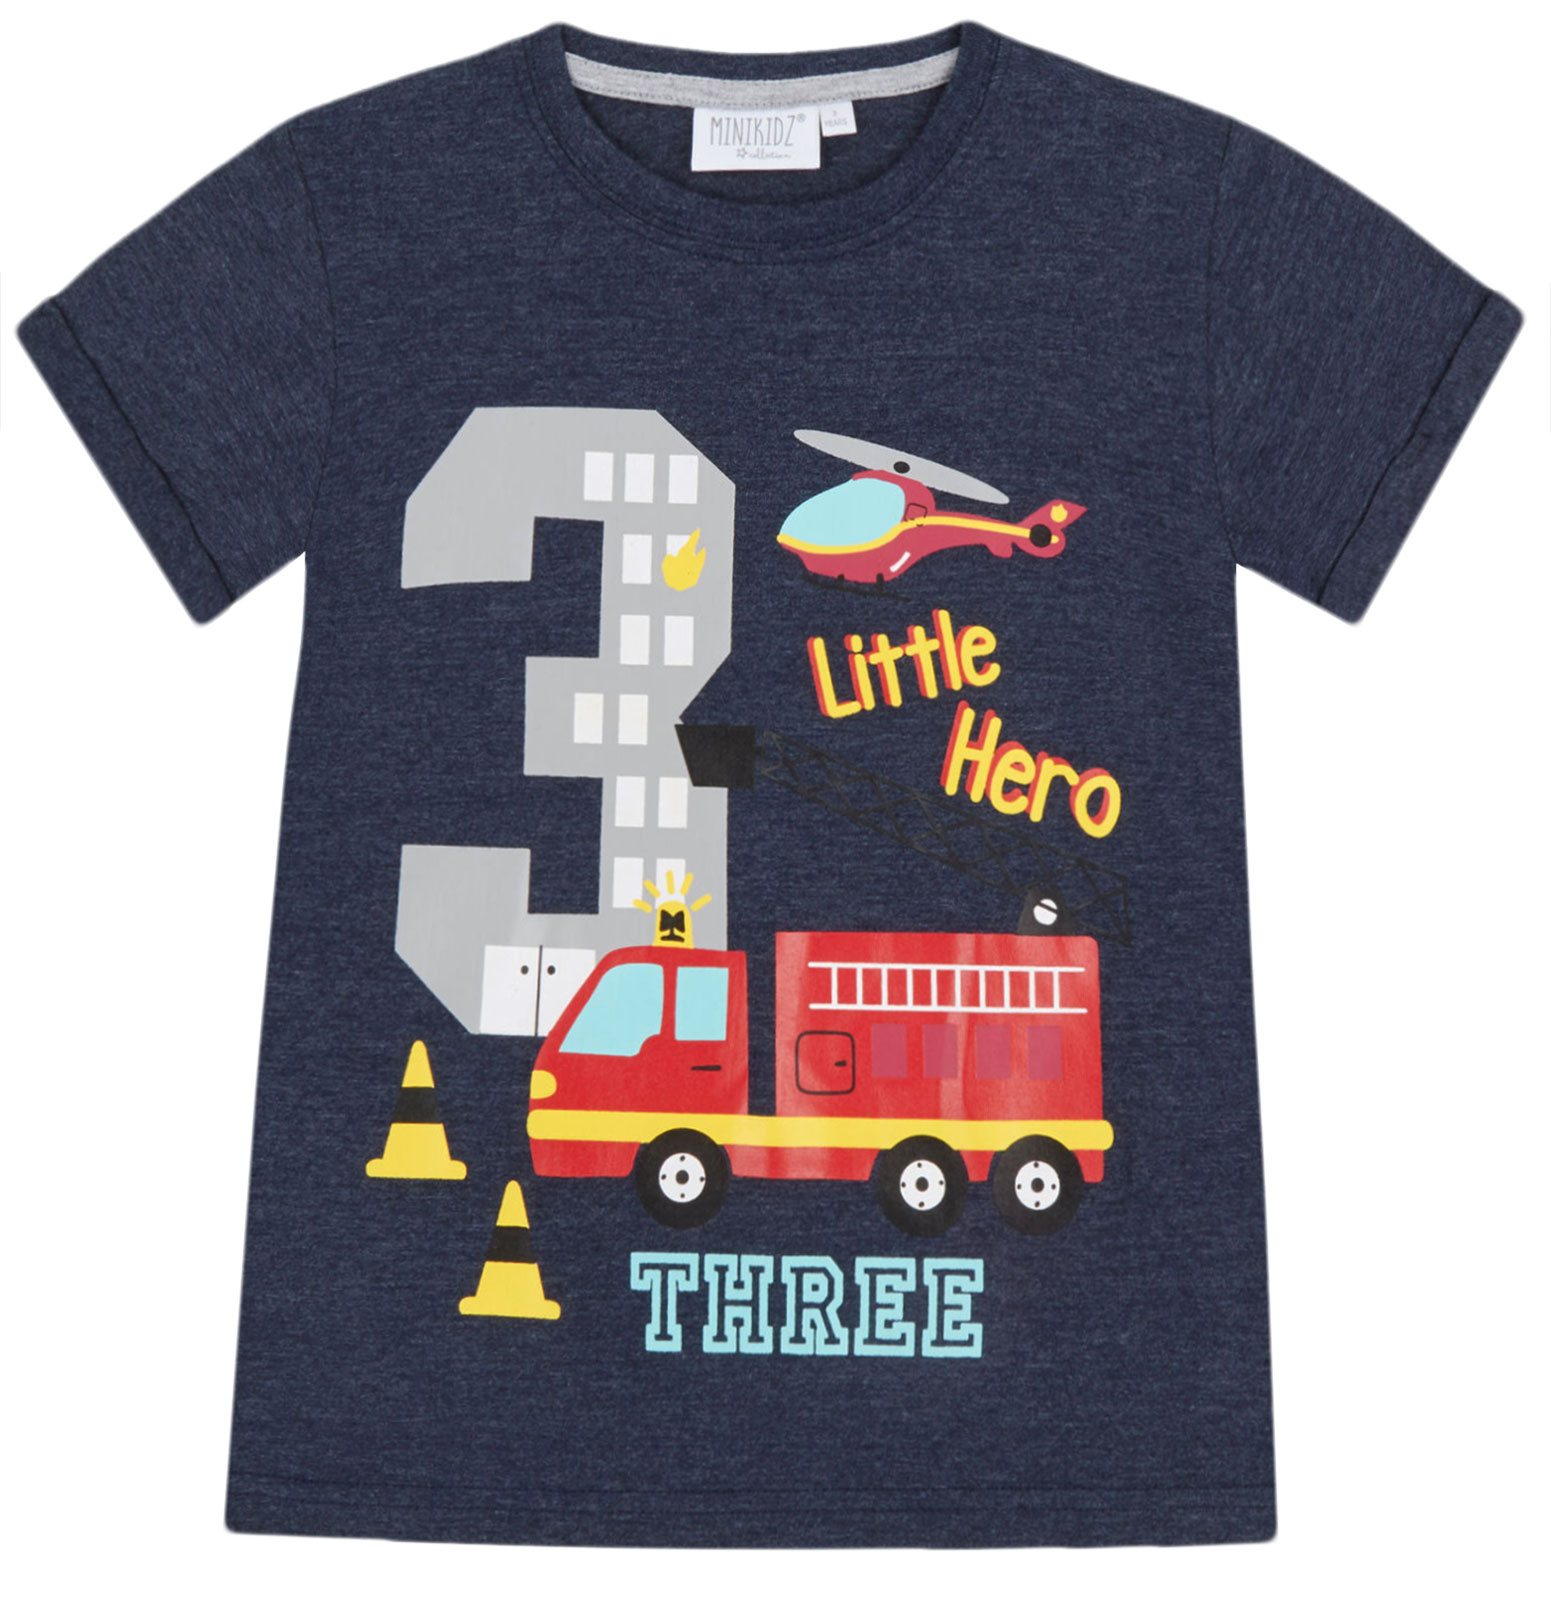 Boys-Birthday-I-Am-1-2-3-4-5-6-Years-Top-Kids-New-Age-Number-Birthday-T-Shirt thumbnail 21